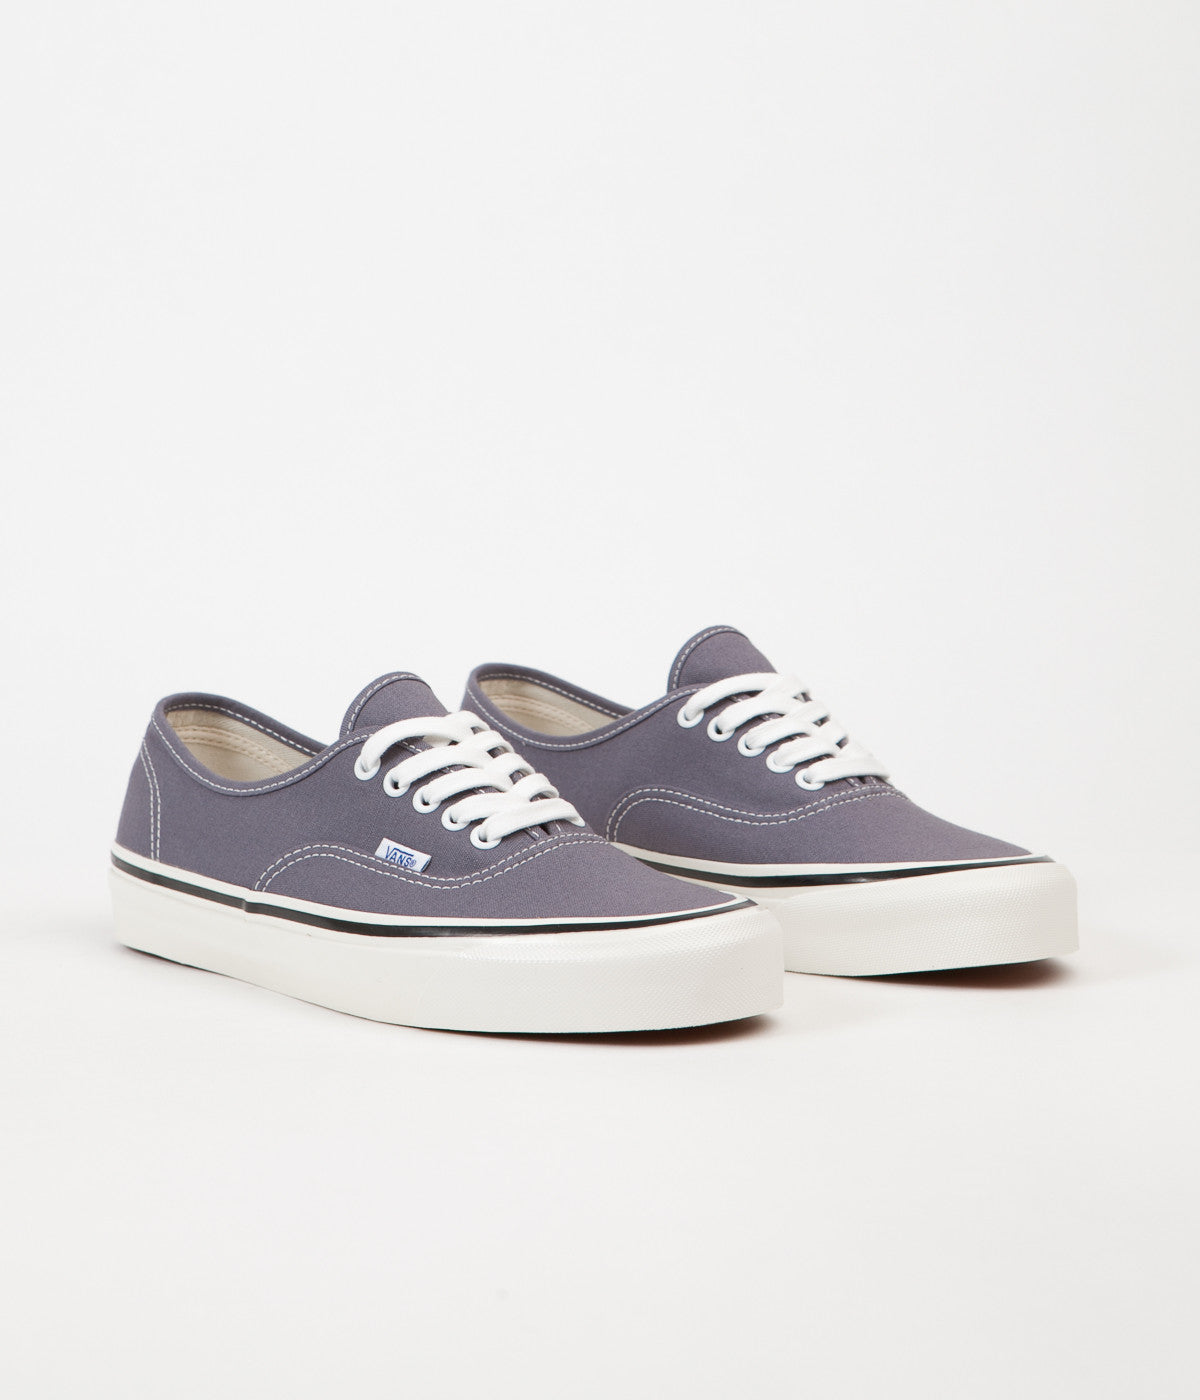 ... Vans Authentic 44 DX Anaheim Factory Shoes - OG Dark Grey ... 8f9654085